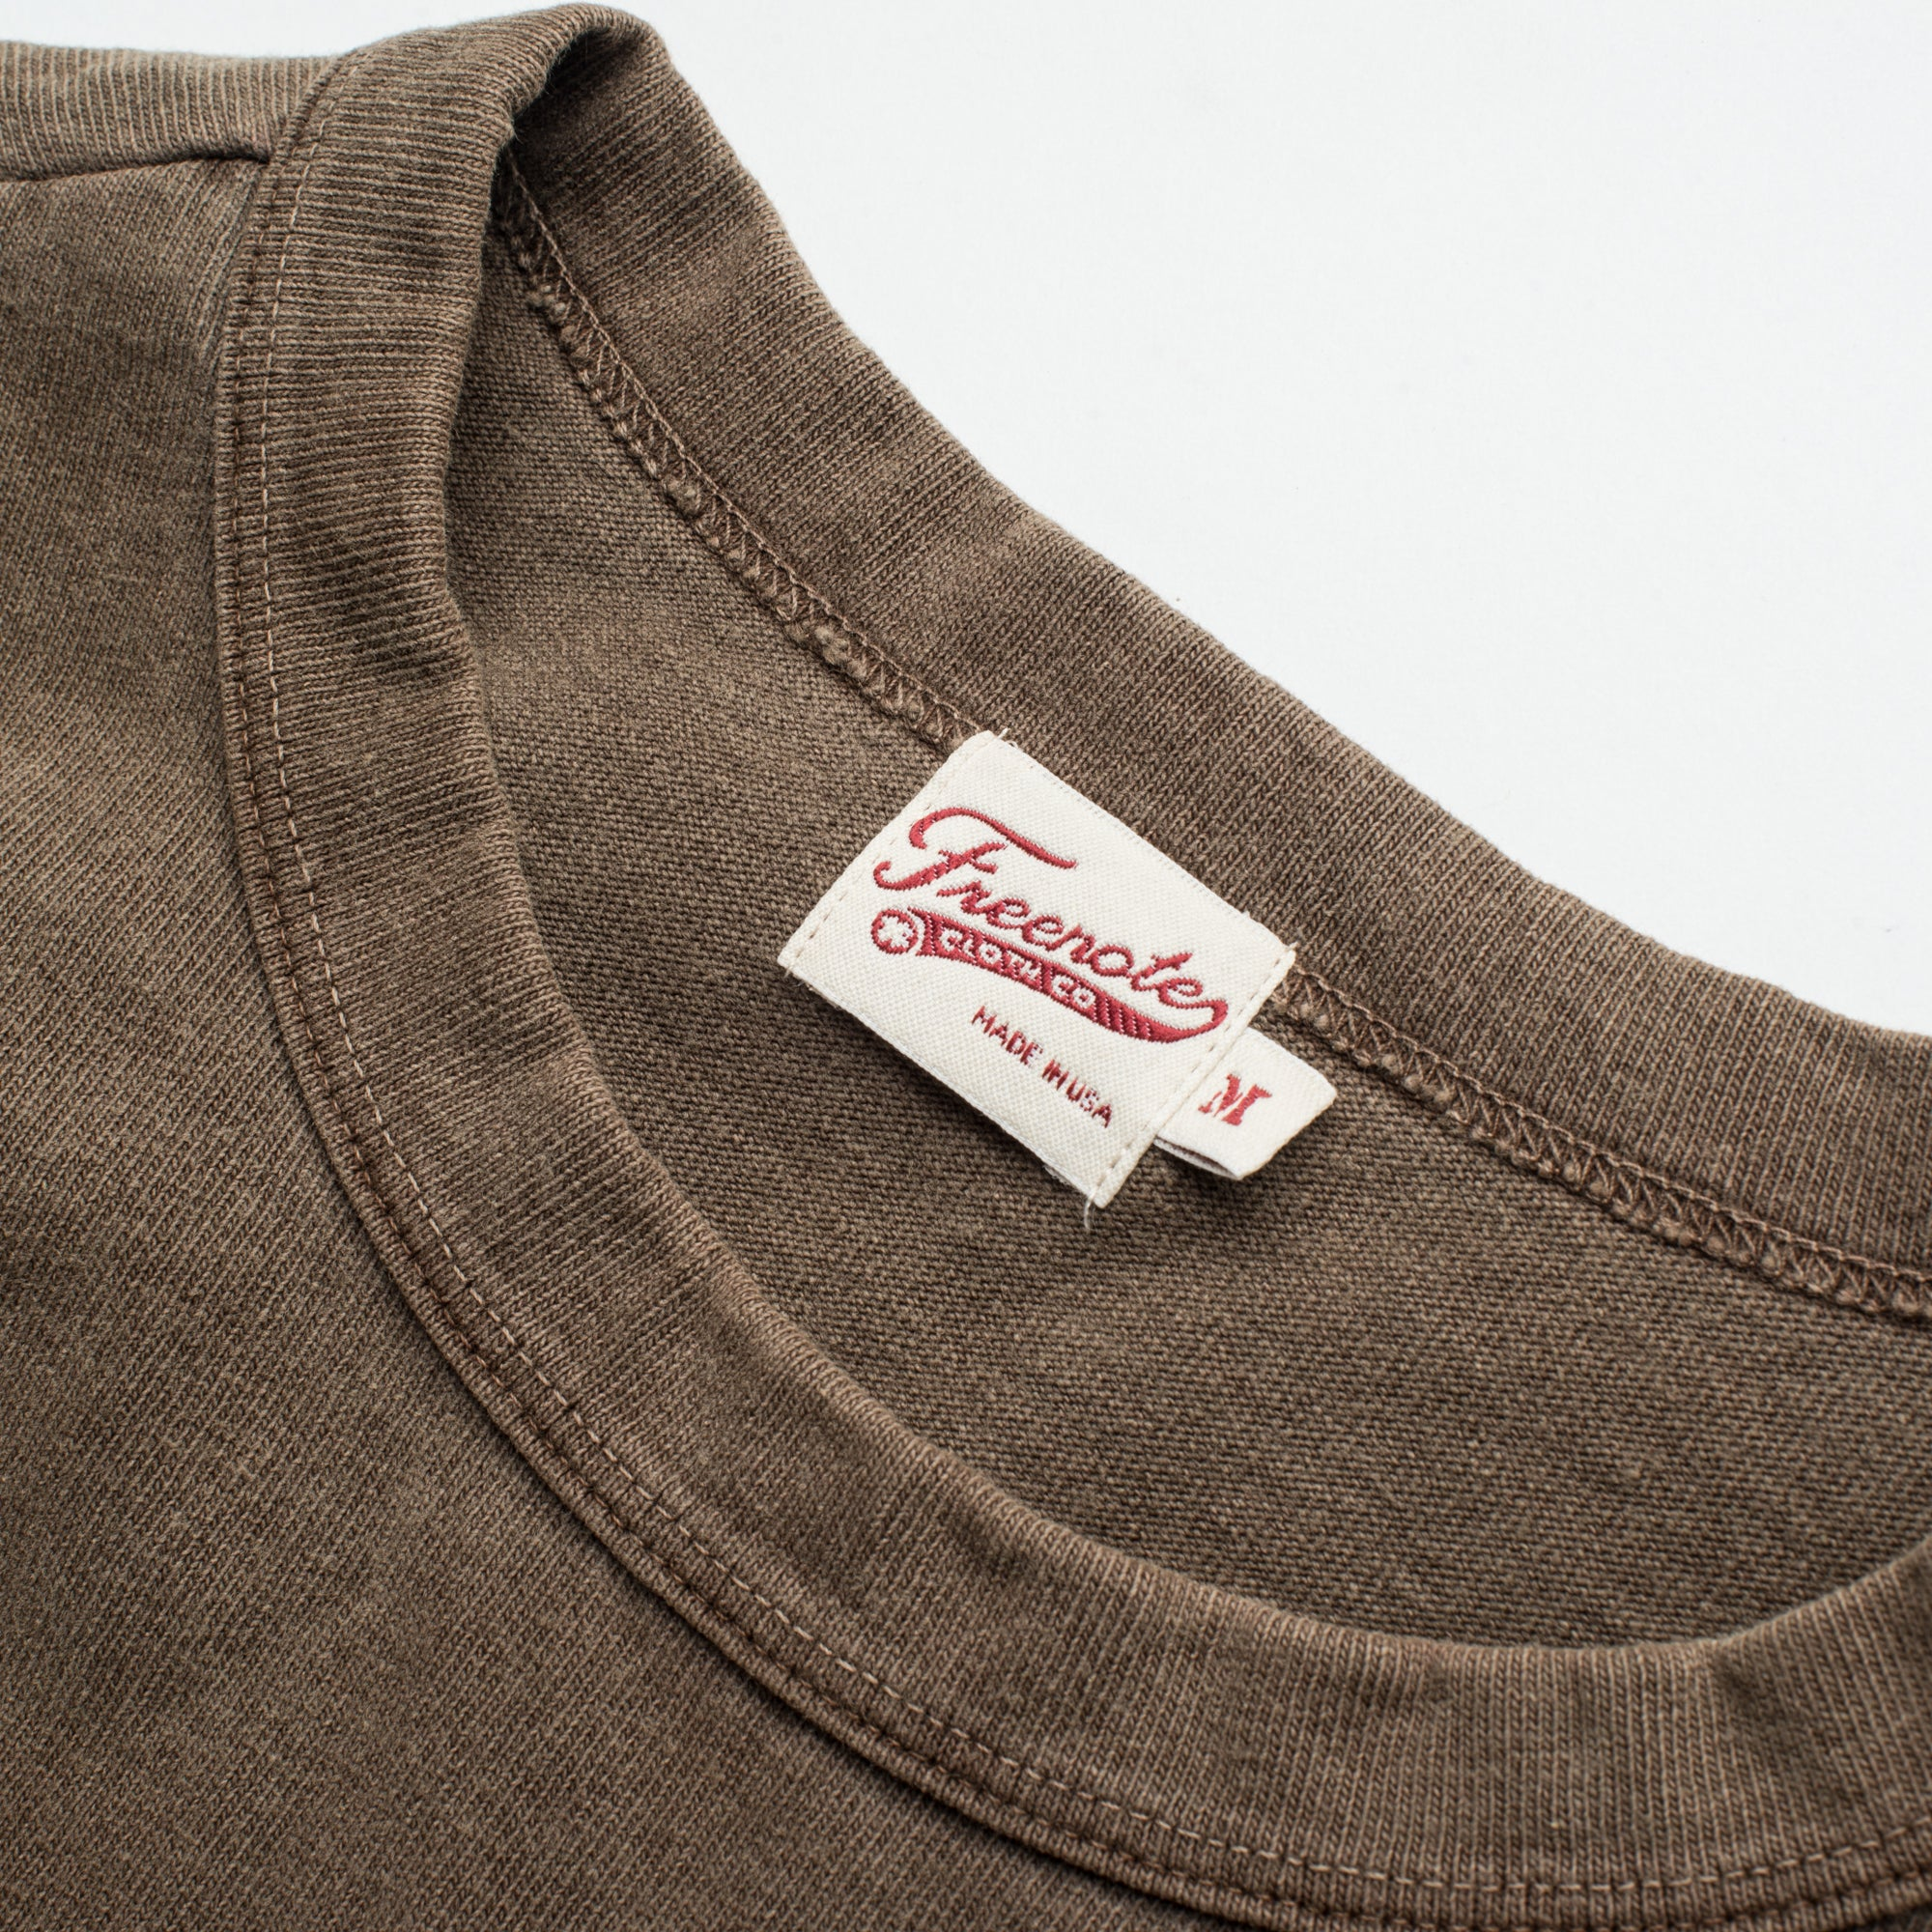 13 OUNCE T-SHIRT DARK OLIVE Tag